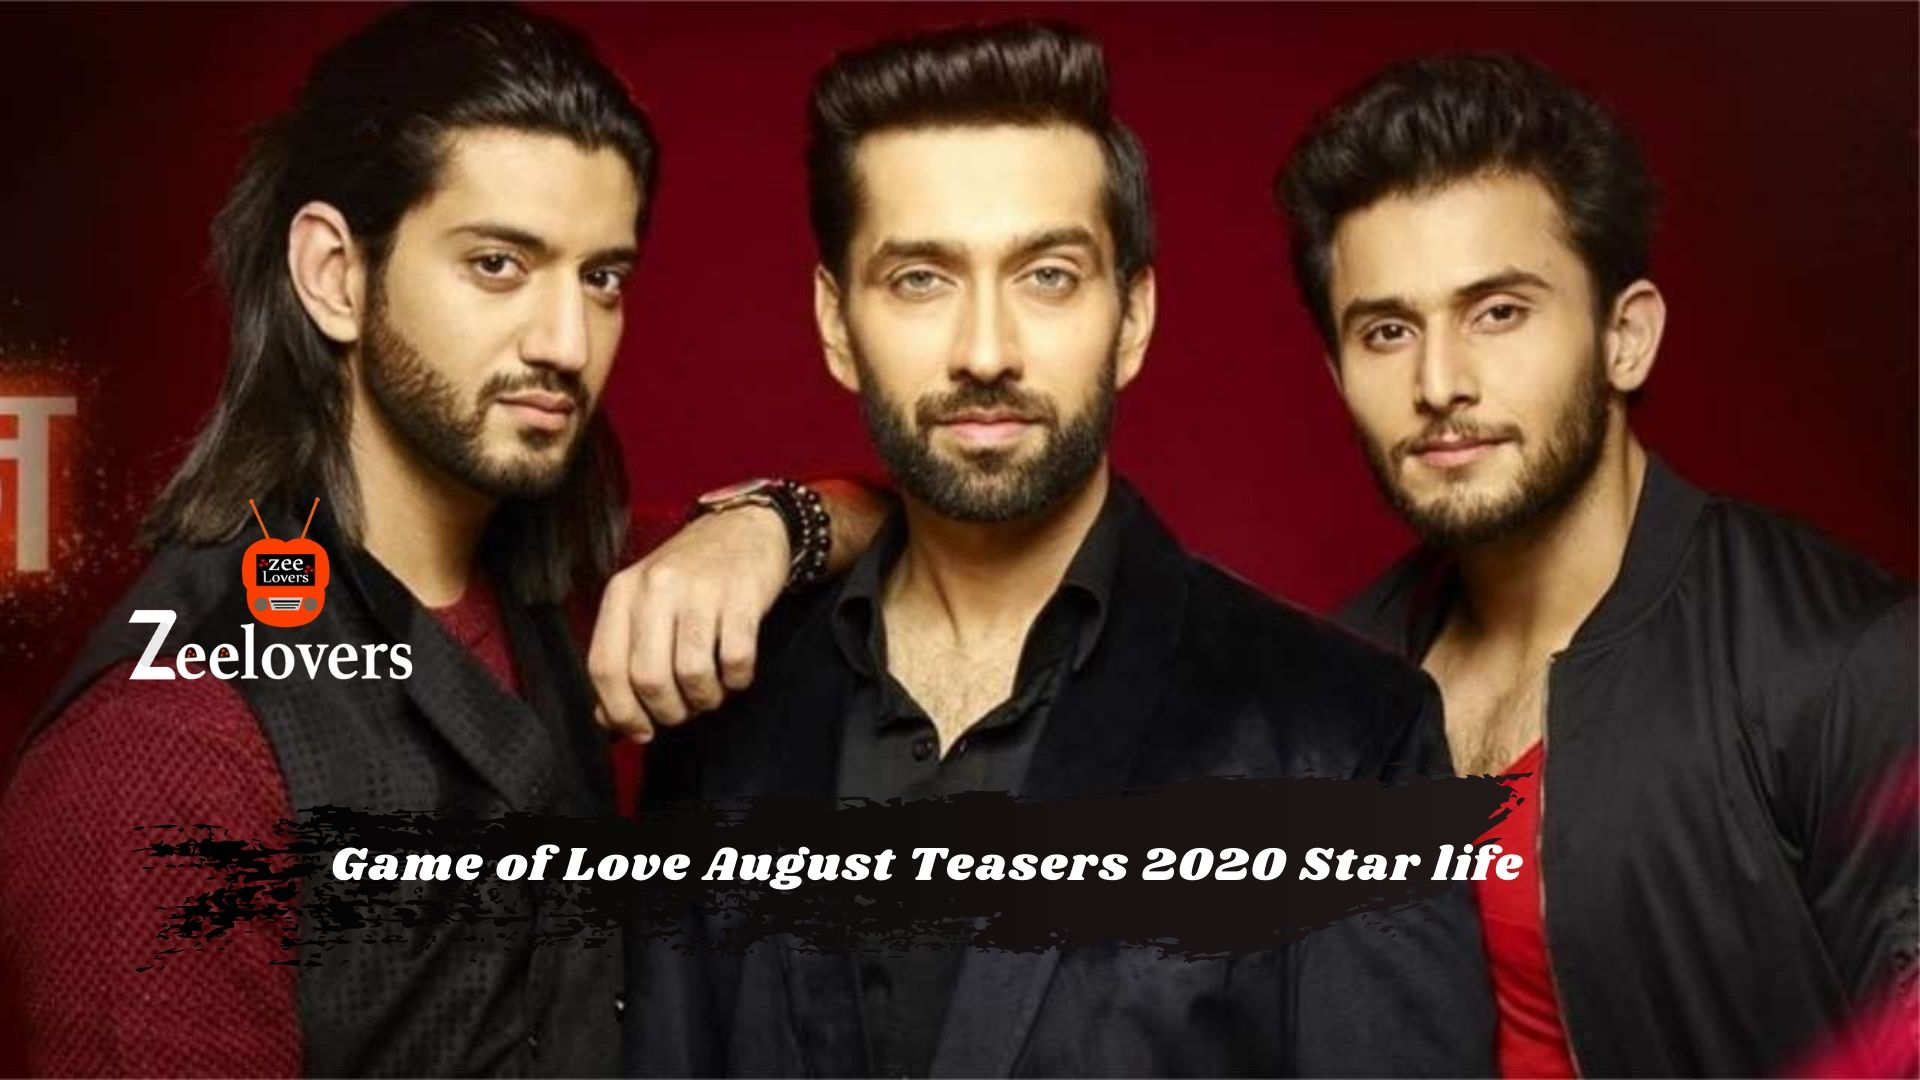 Game of Love August Teasers 2020 Star life